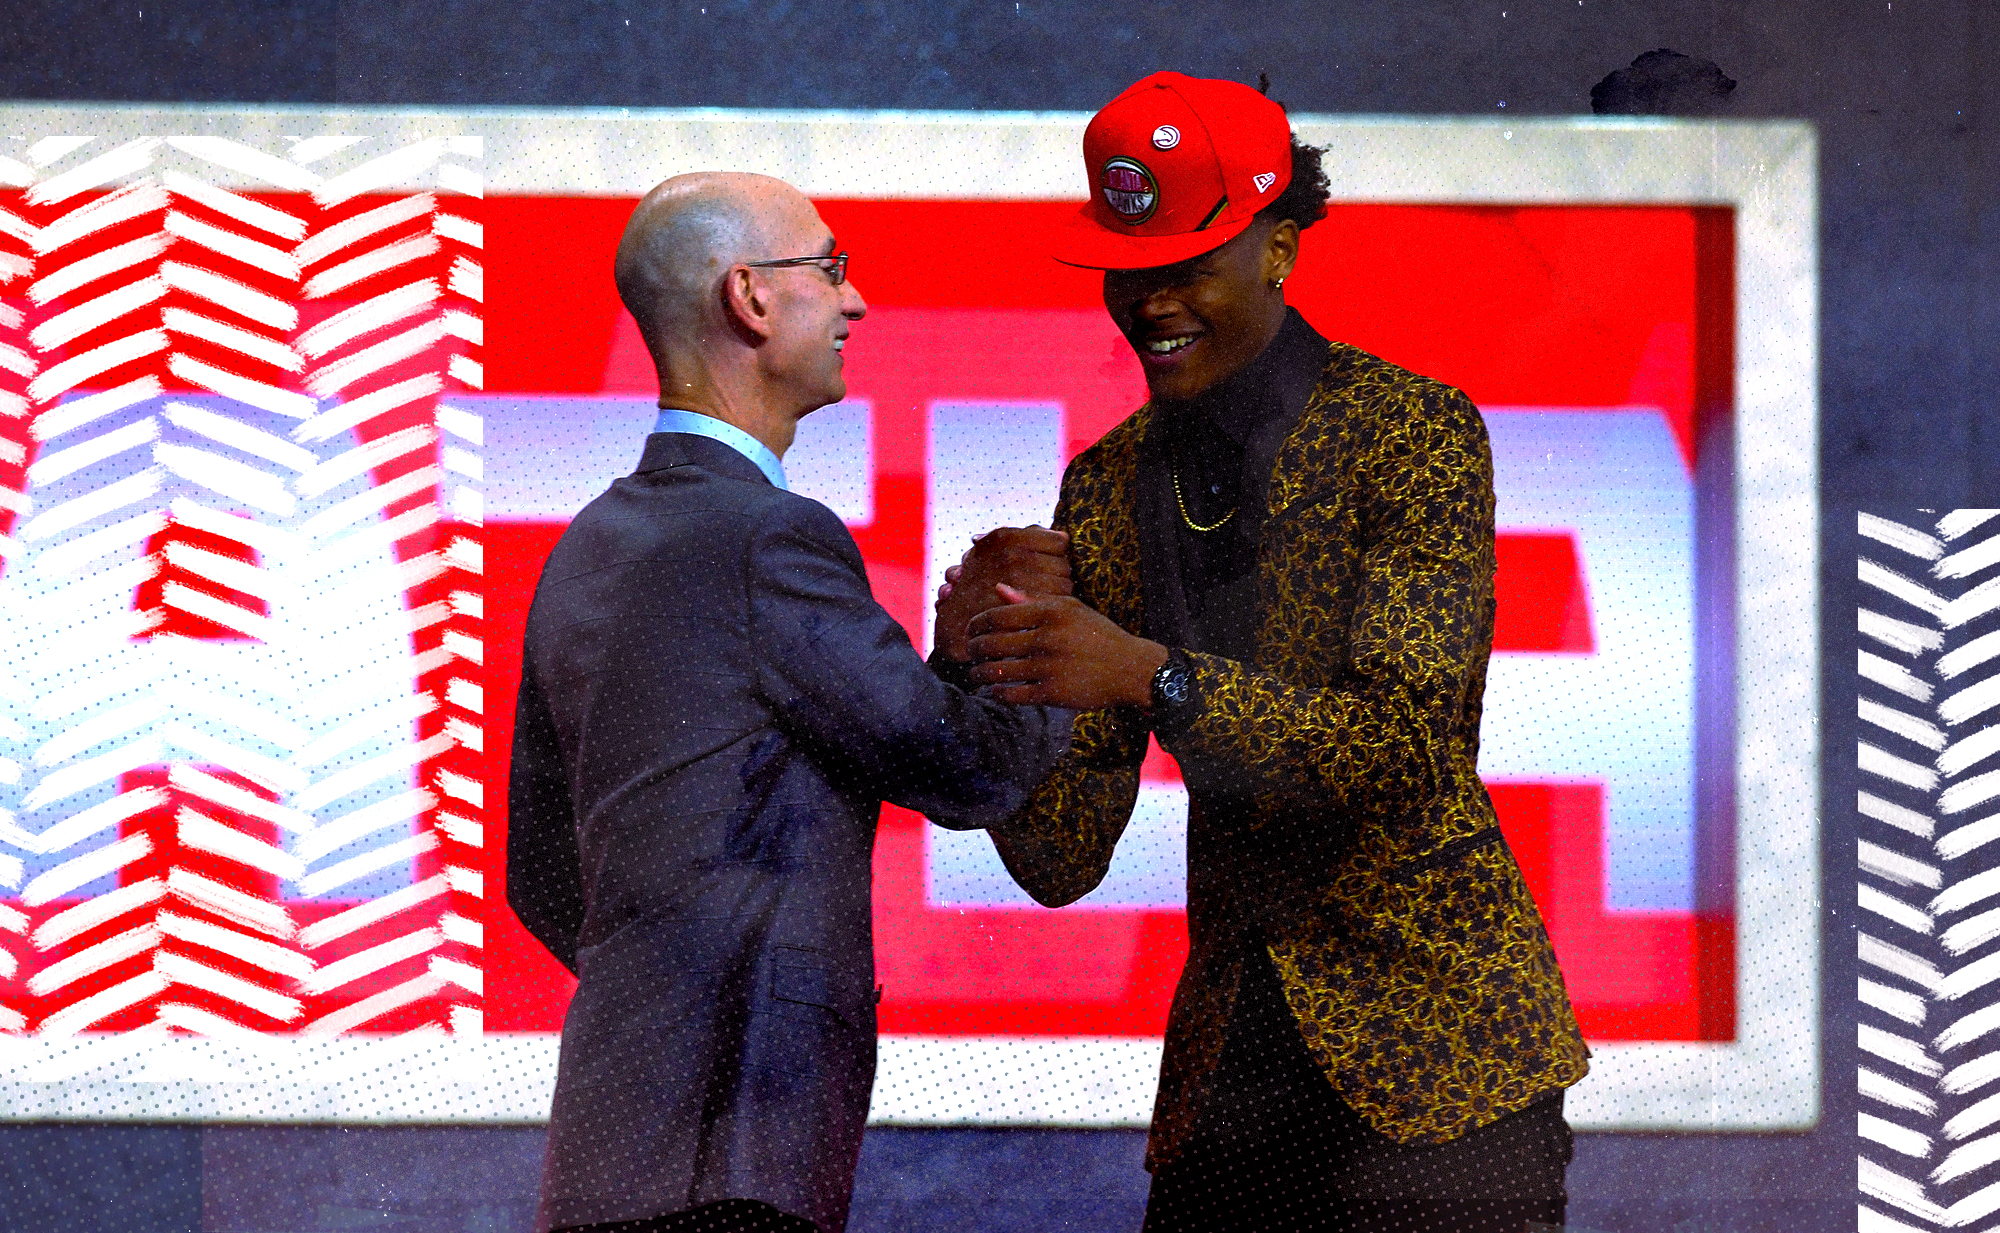 At the very worst, the Atlanta Hawks just got a lot more exciting